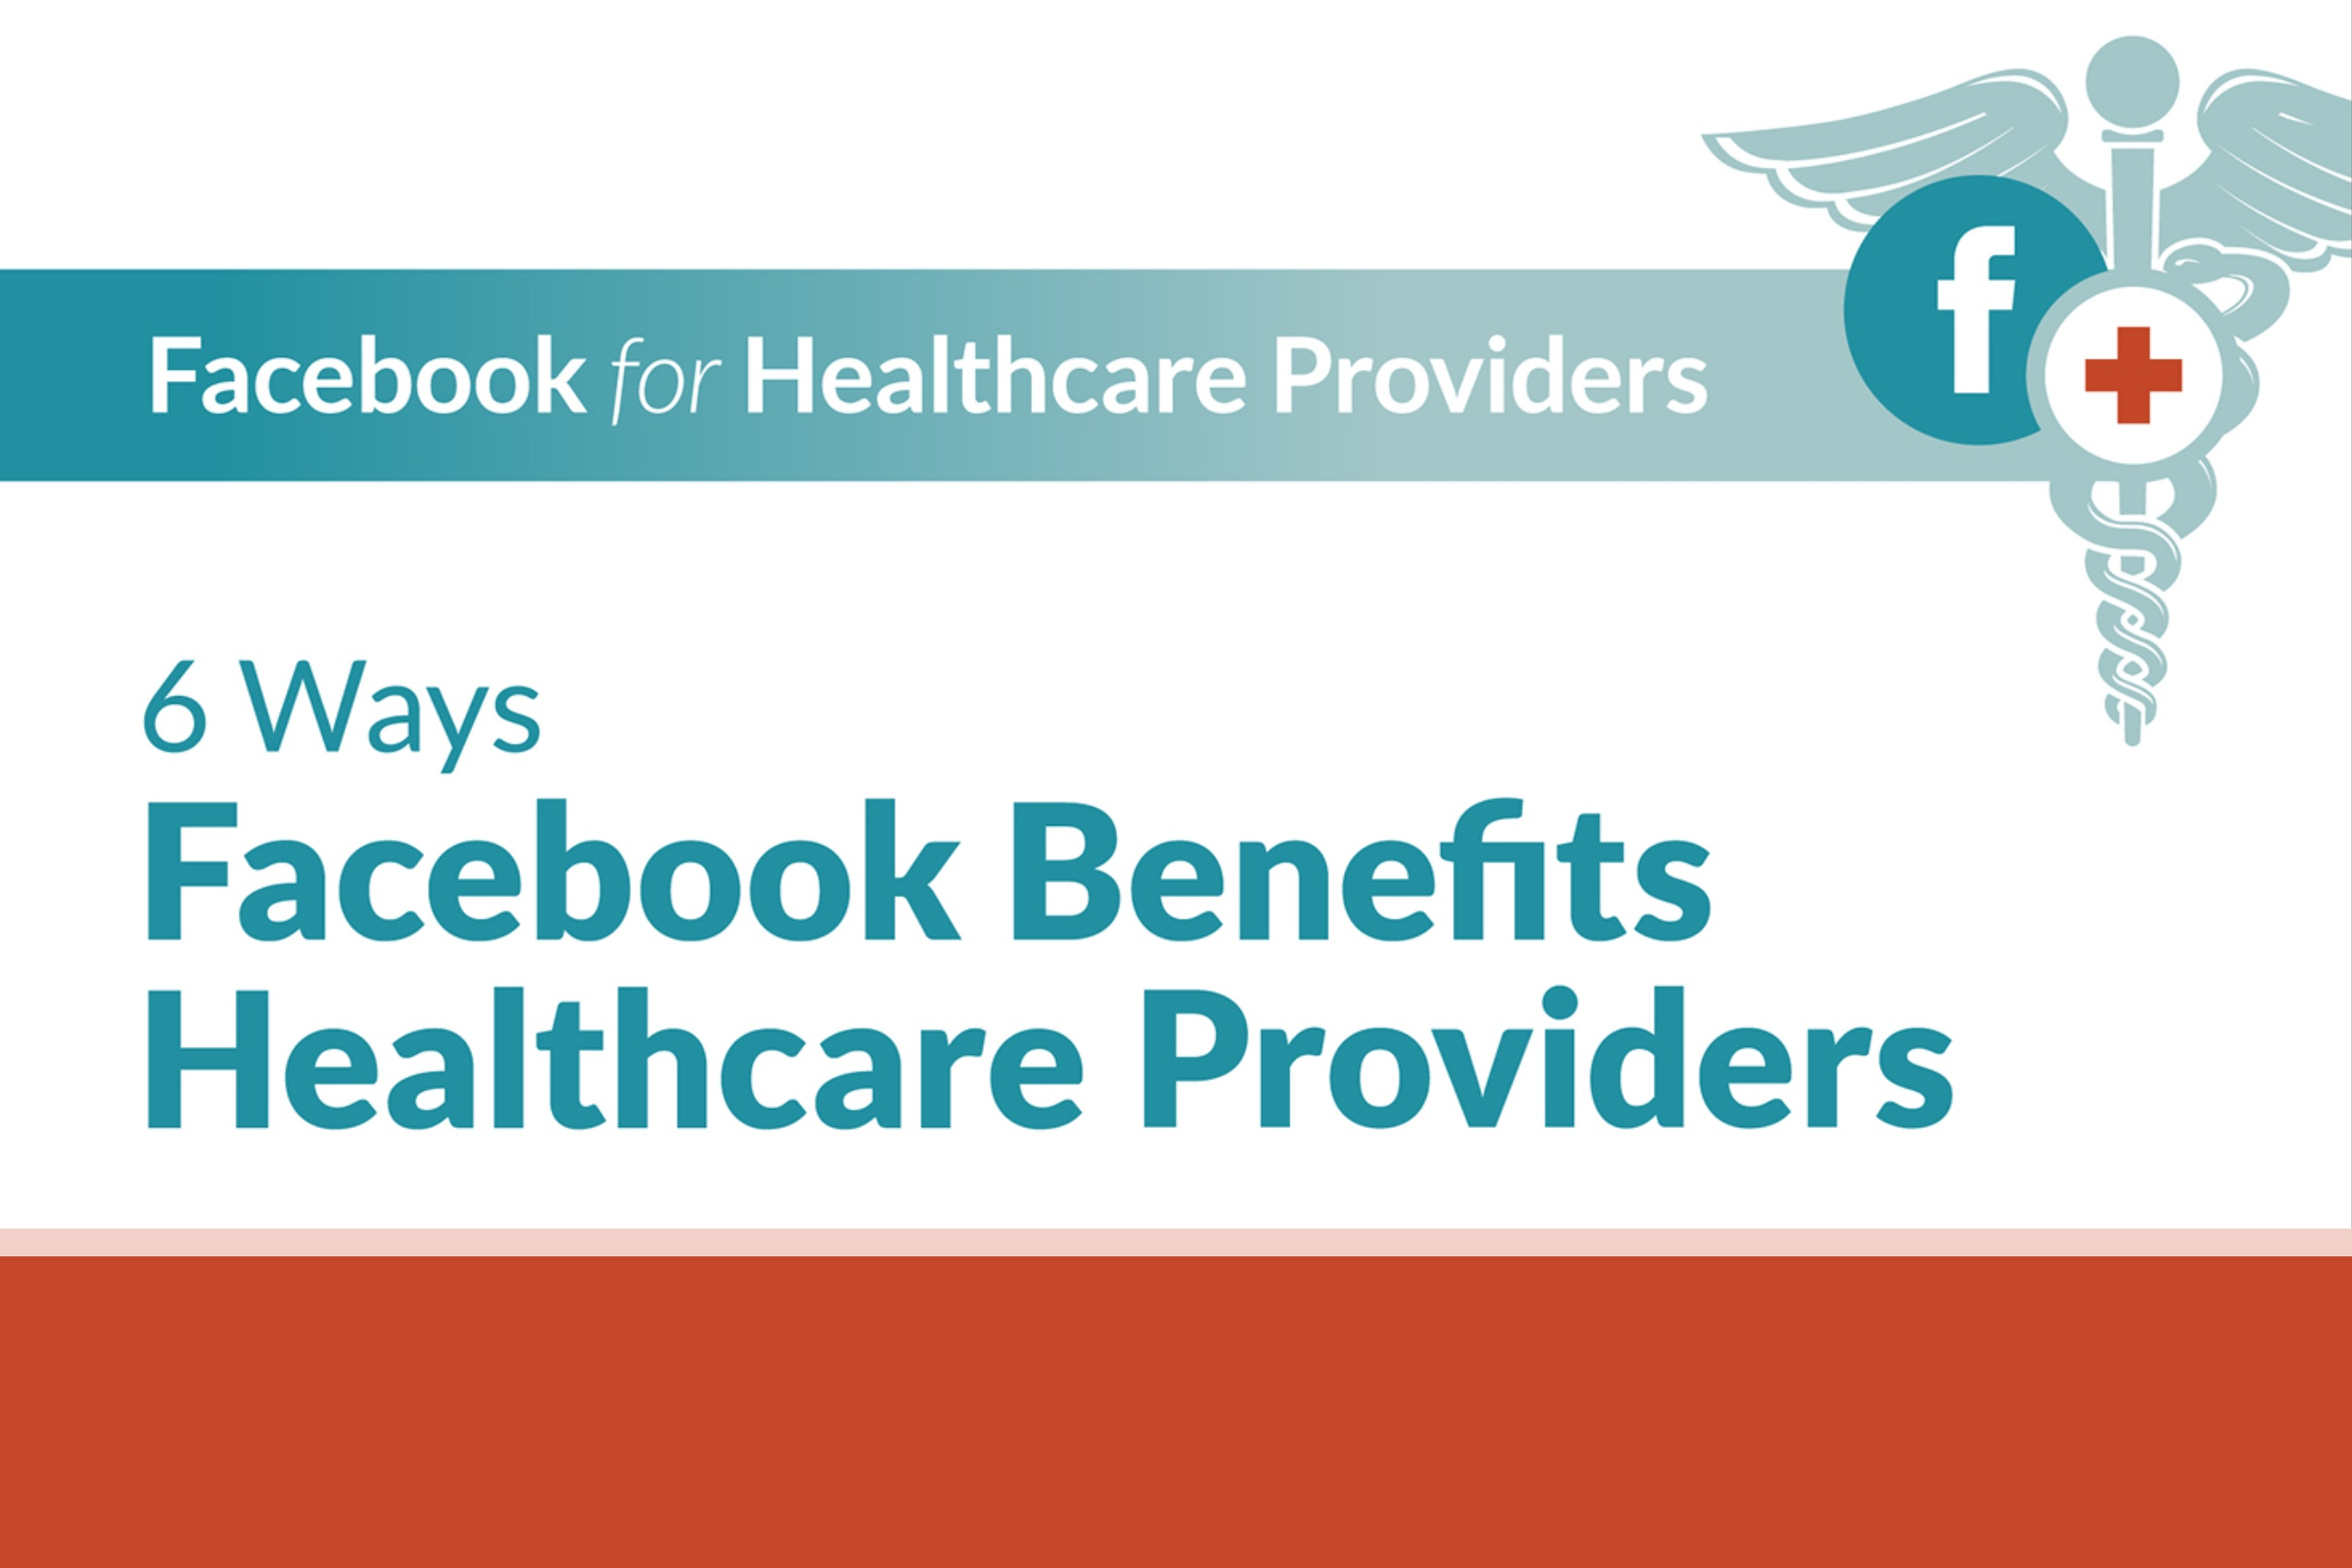 6 Ways Facebook Benefits Healthcare Providers (infographic)-1